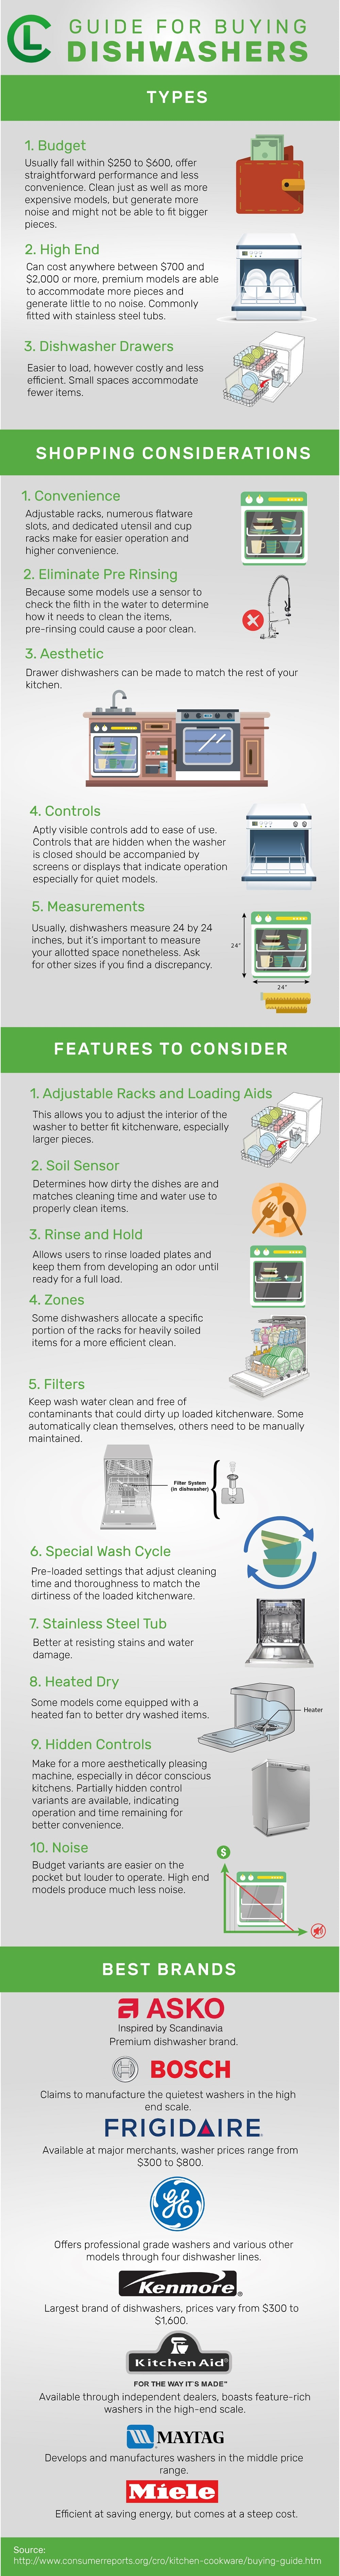 Guide For Buying Dish Washers Infographic